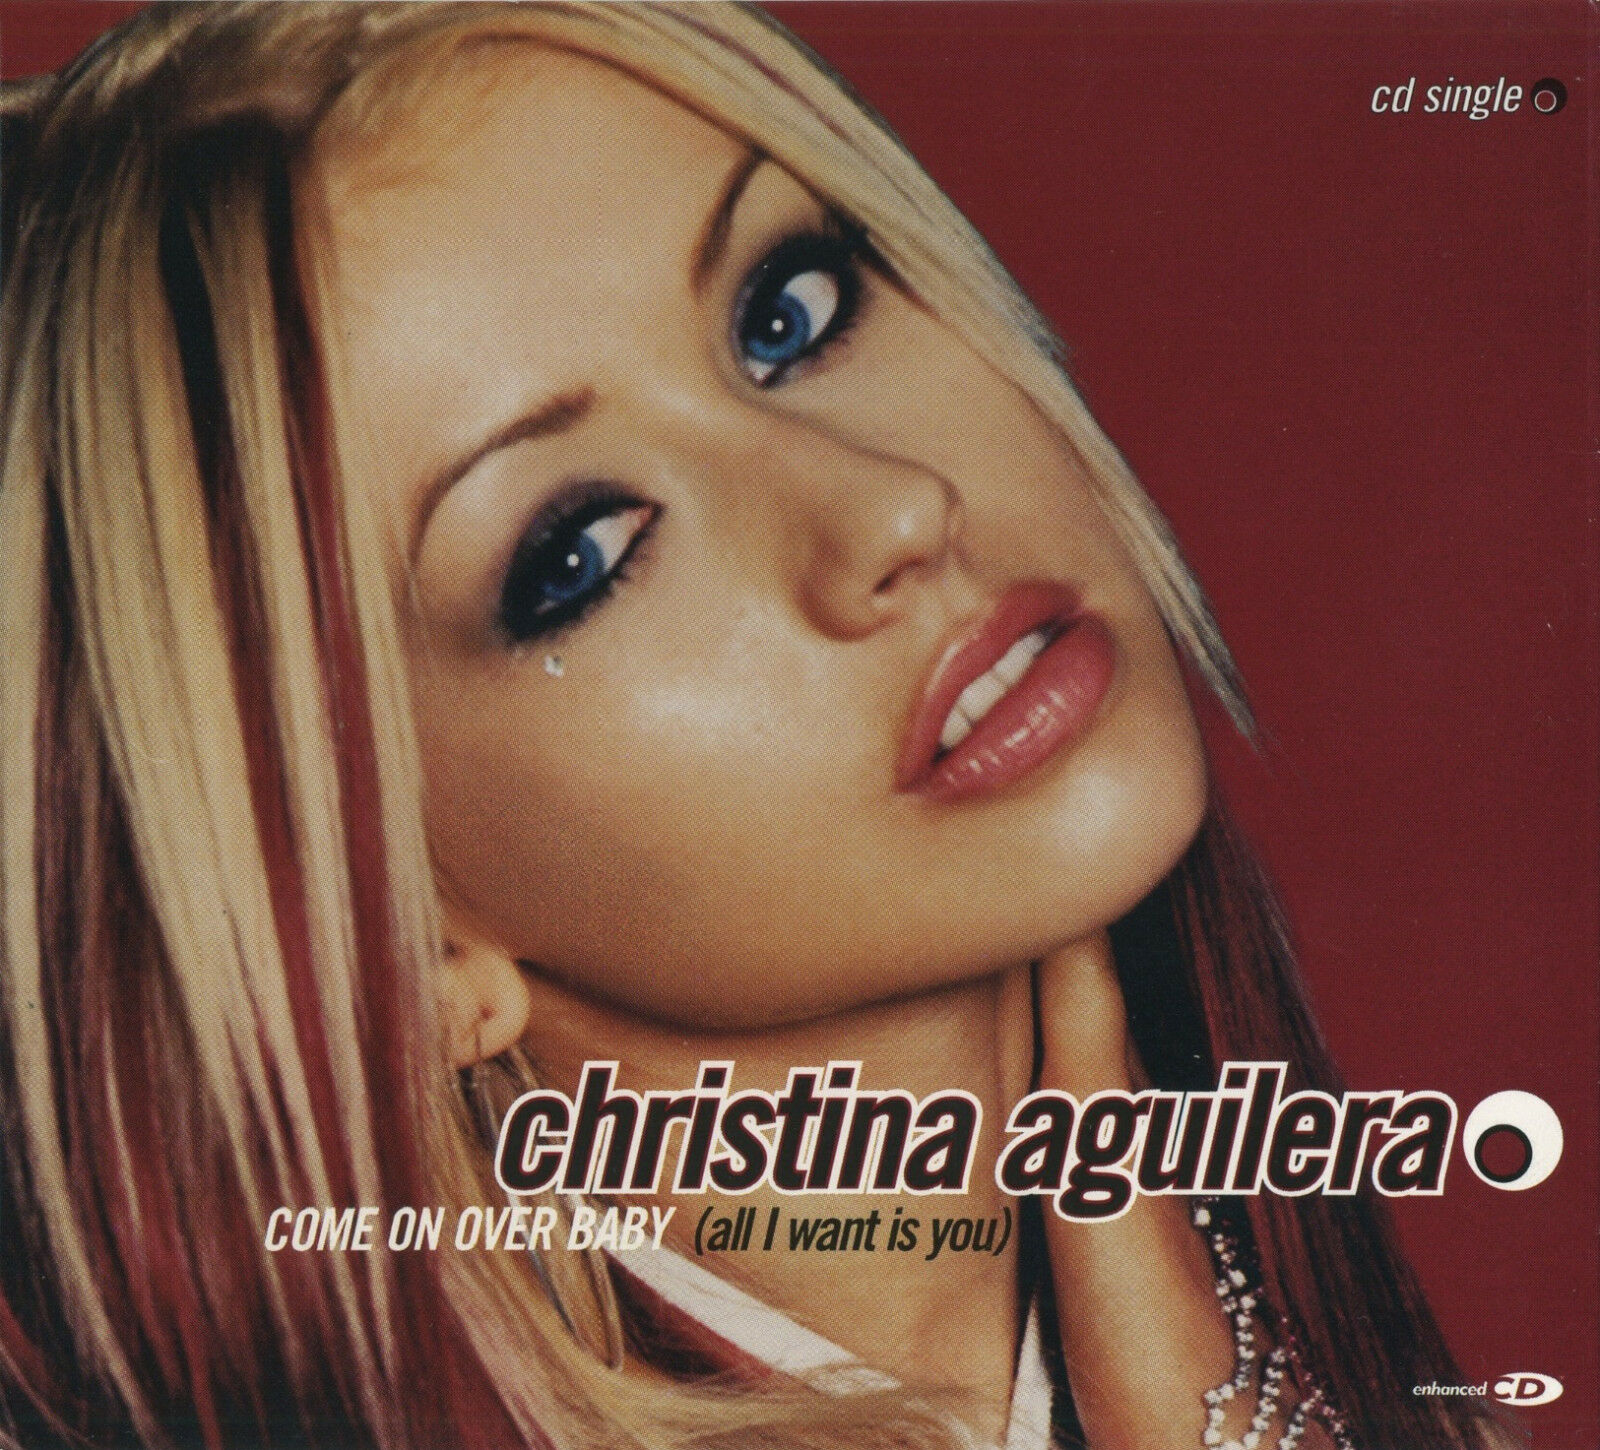 Christina Aguilera Slow Down Baby Australia Cd Single For Sale Online Ebay